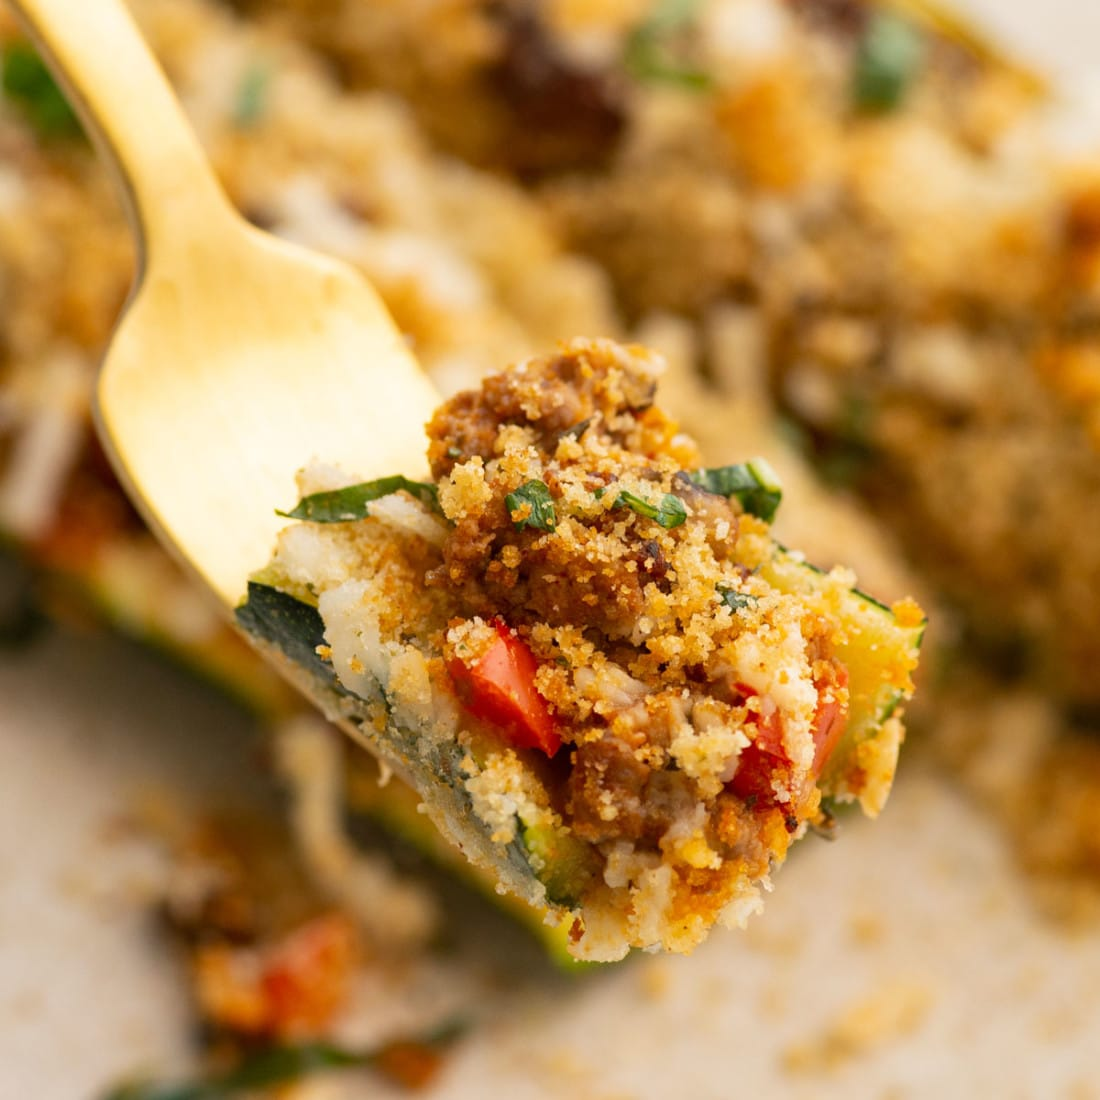 taking a bite of zucchini, meatless meat tomato sauce, veggies, plant-based cheese, and breadcrumbs